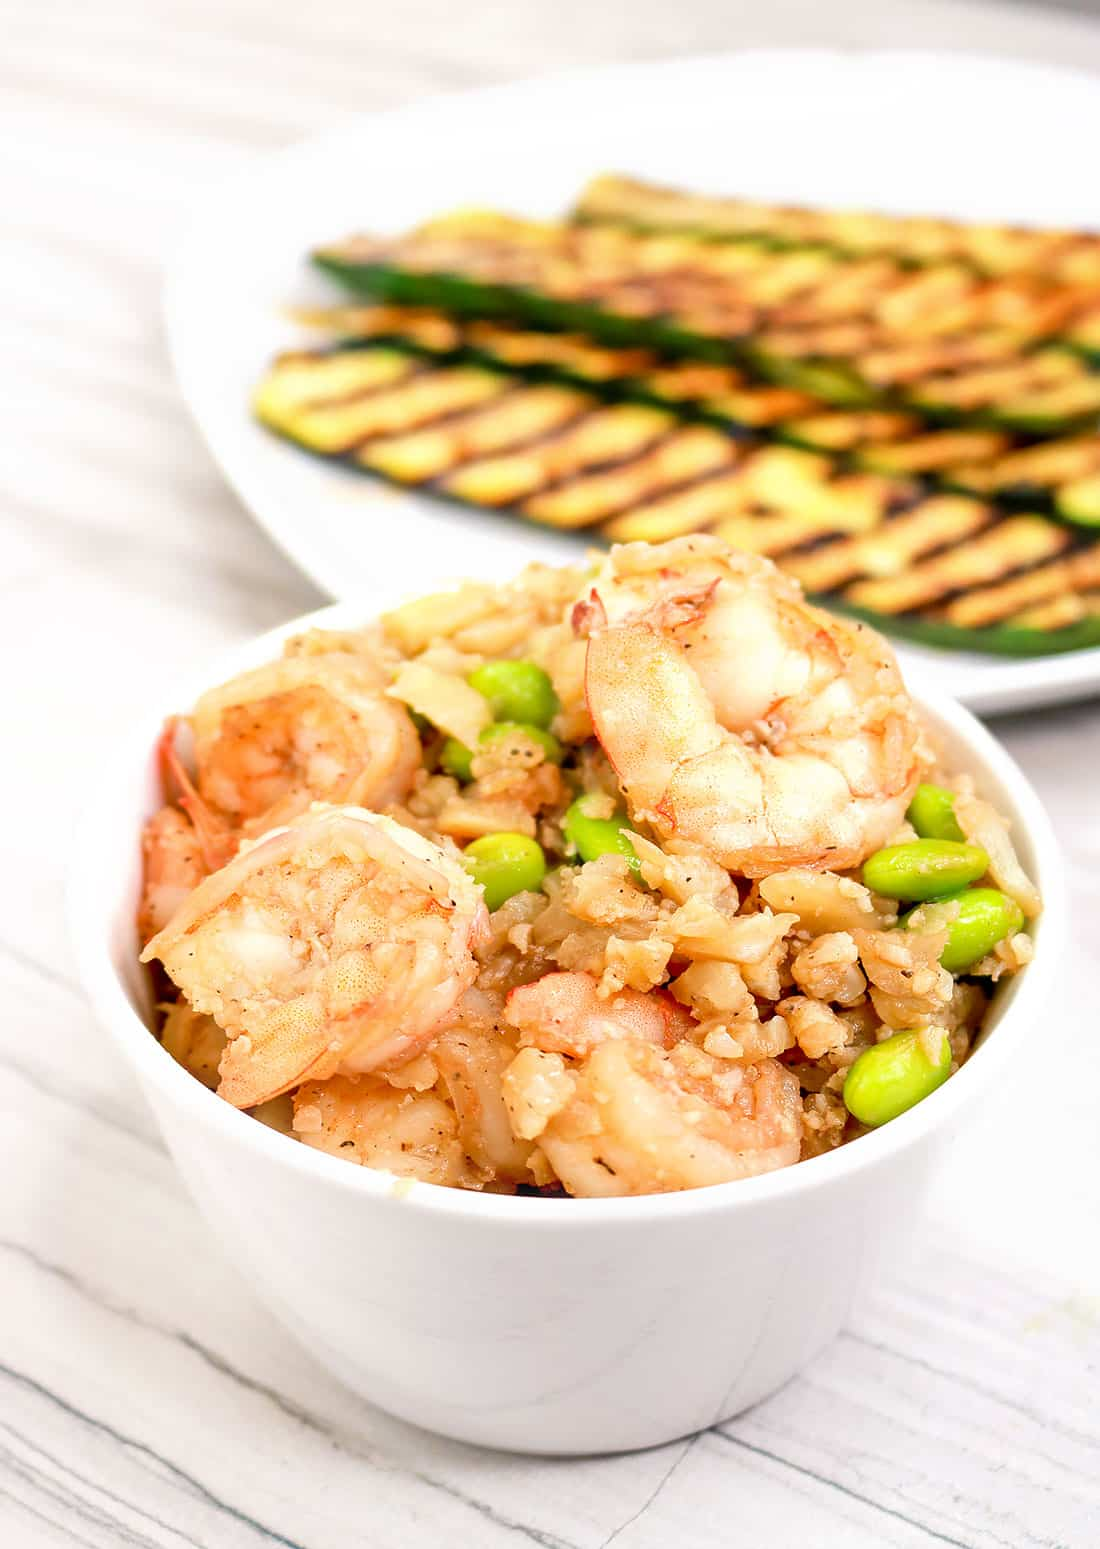 Shrimp Cauliflower Fried rice with edamame in a bowl